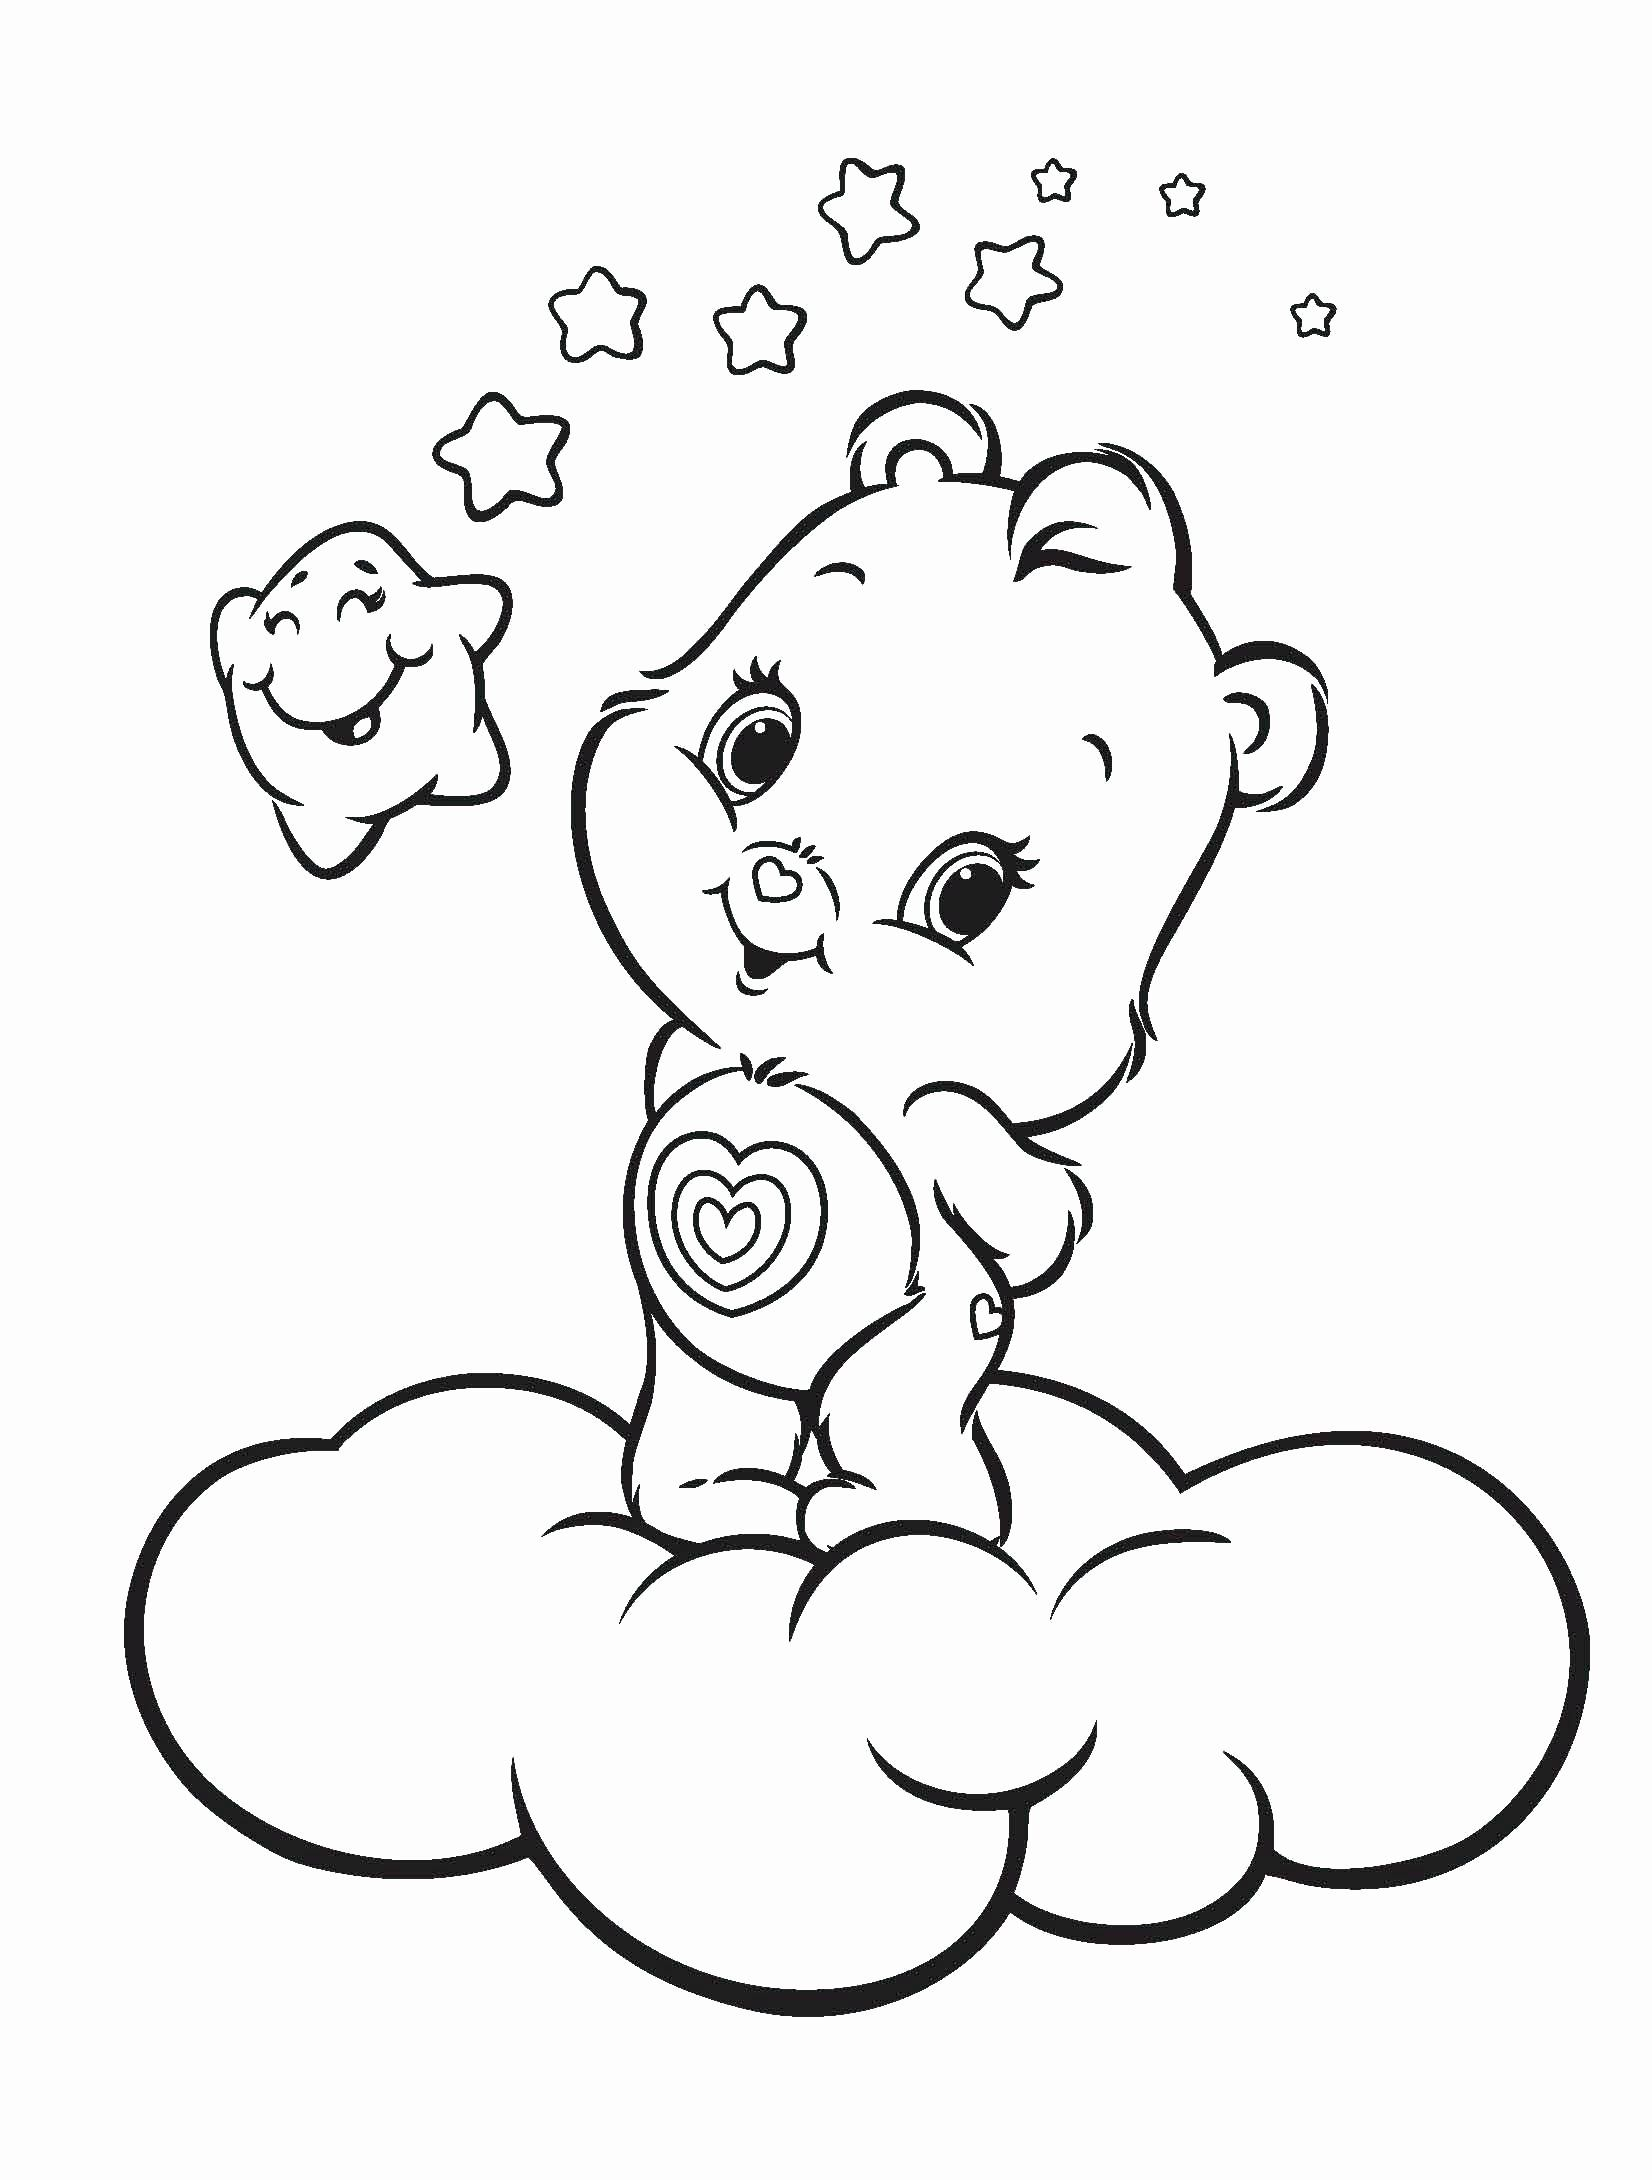 Coloring Pages Teddy Bear In 2020 Bear Coloring Pages Baby